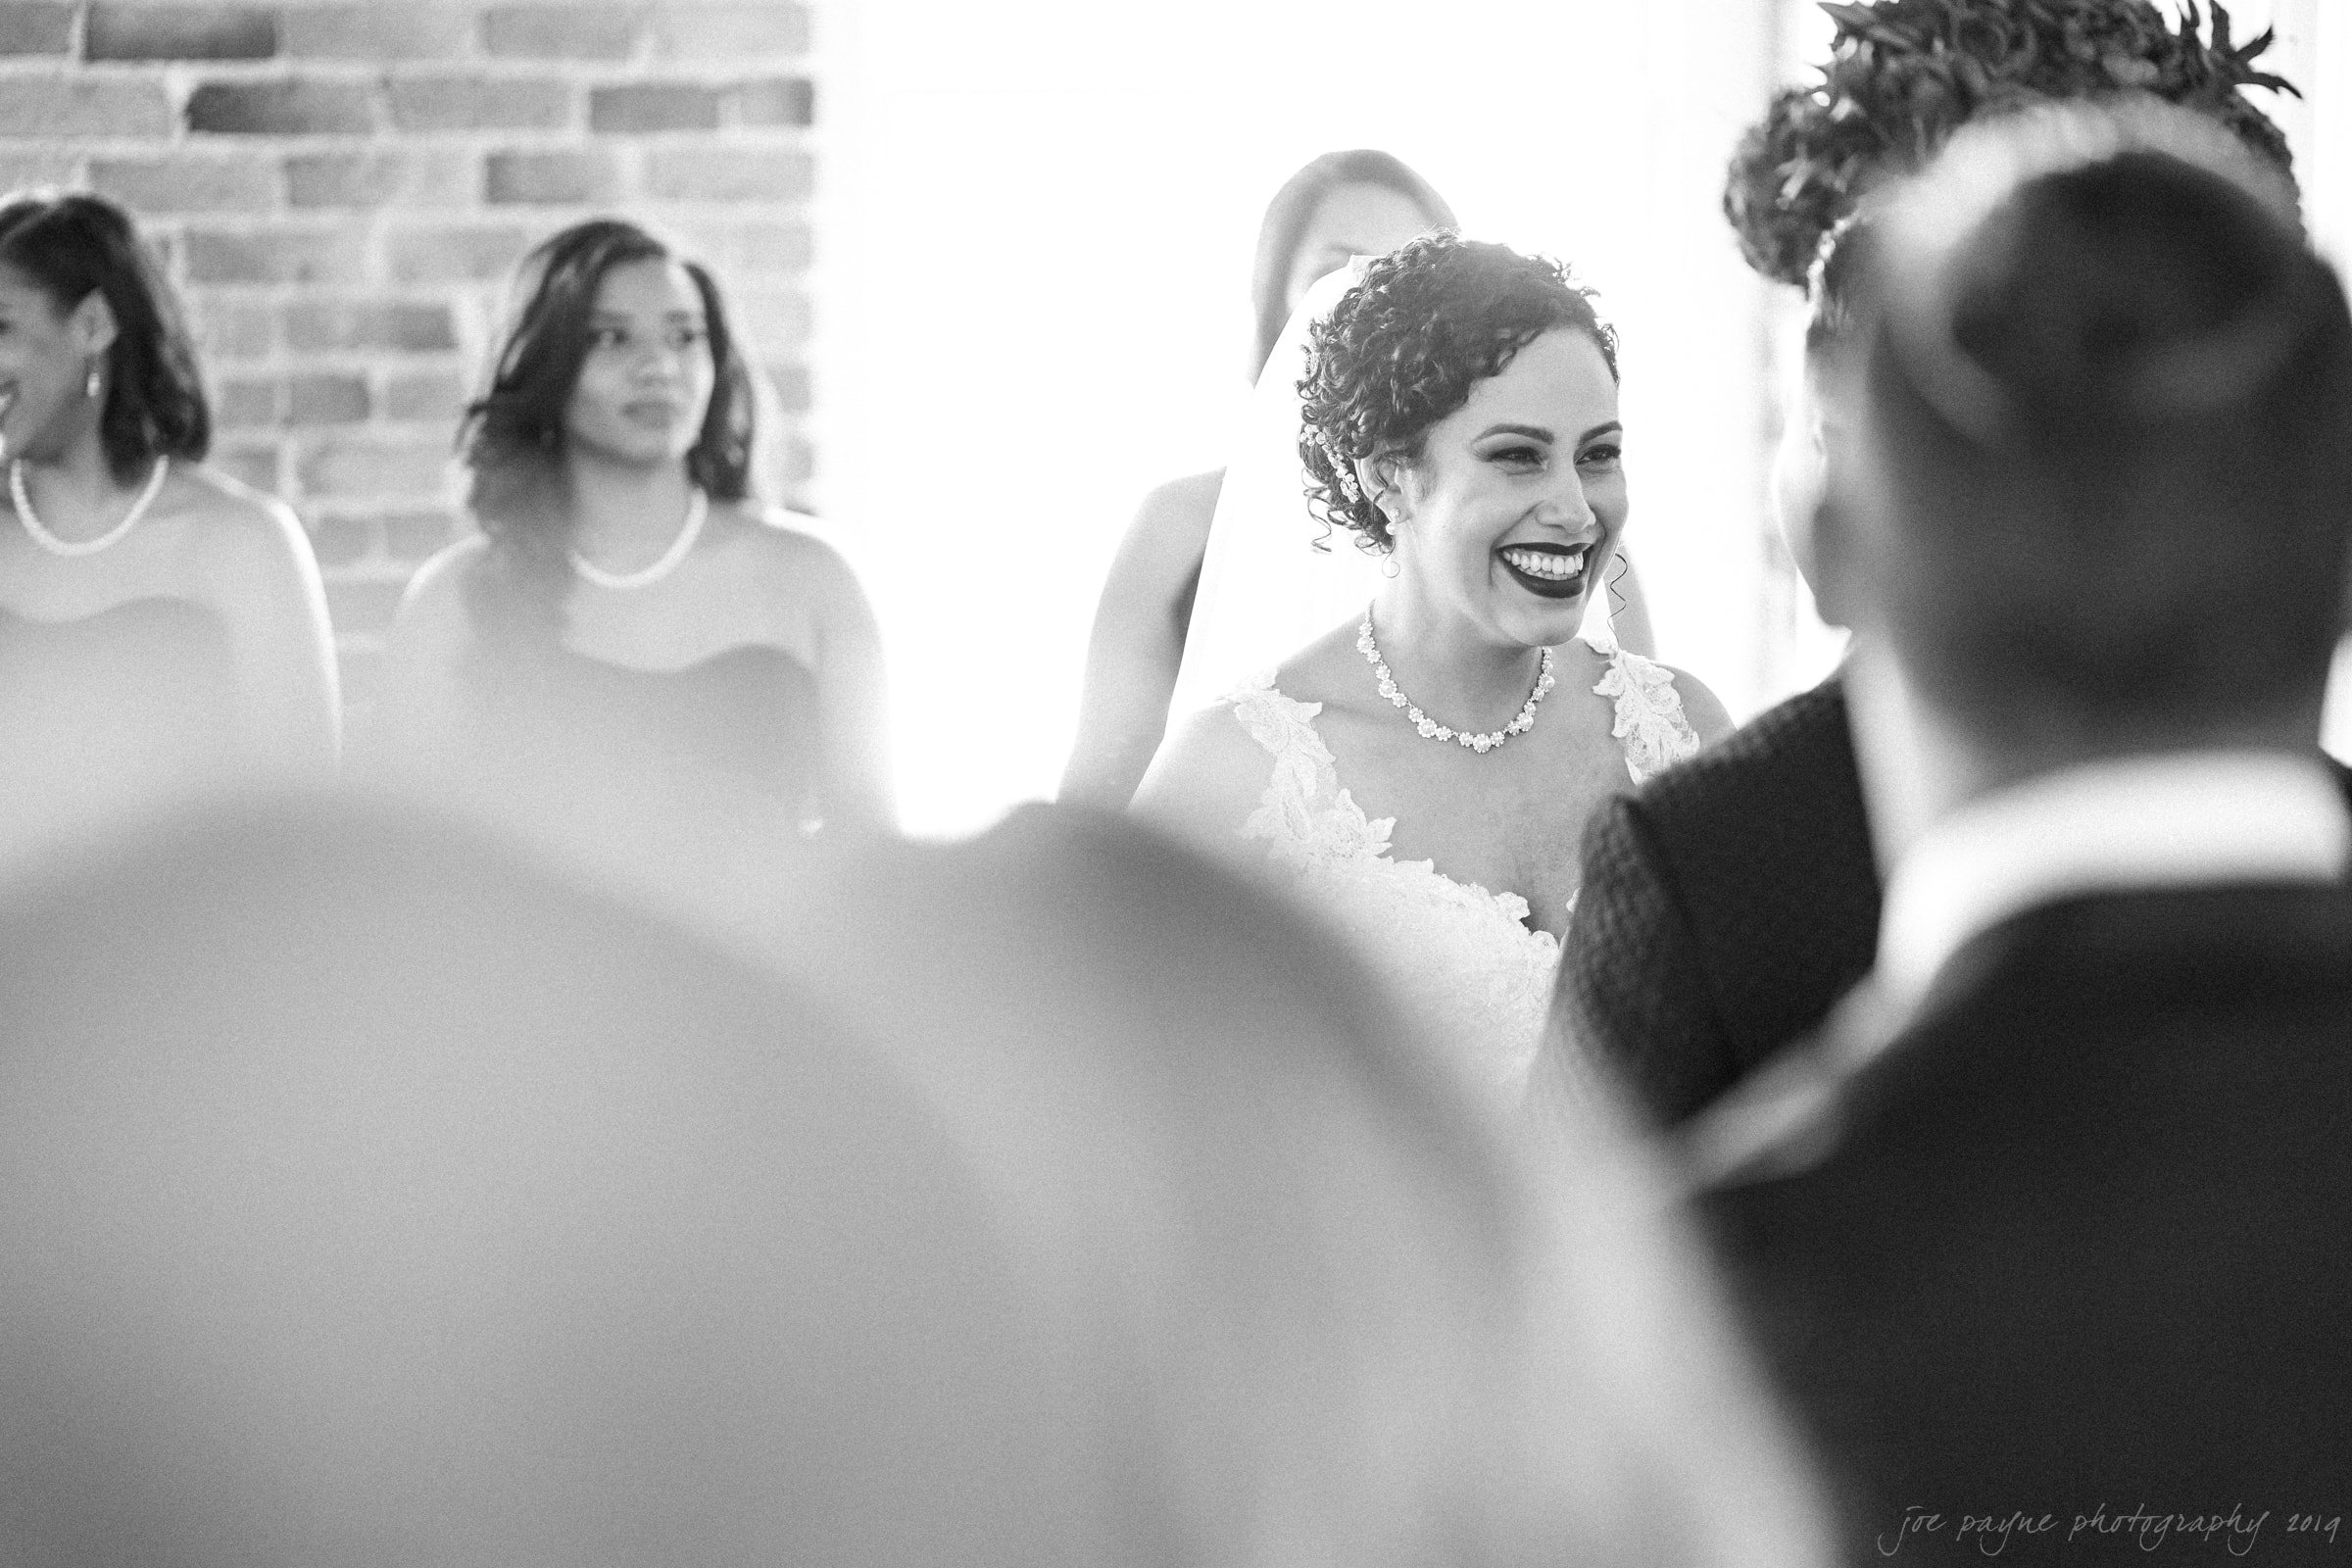 melrose knitting mill raleigh wedding photographer melanie anthony 26